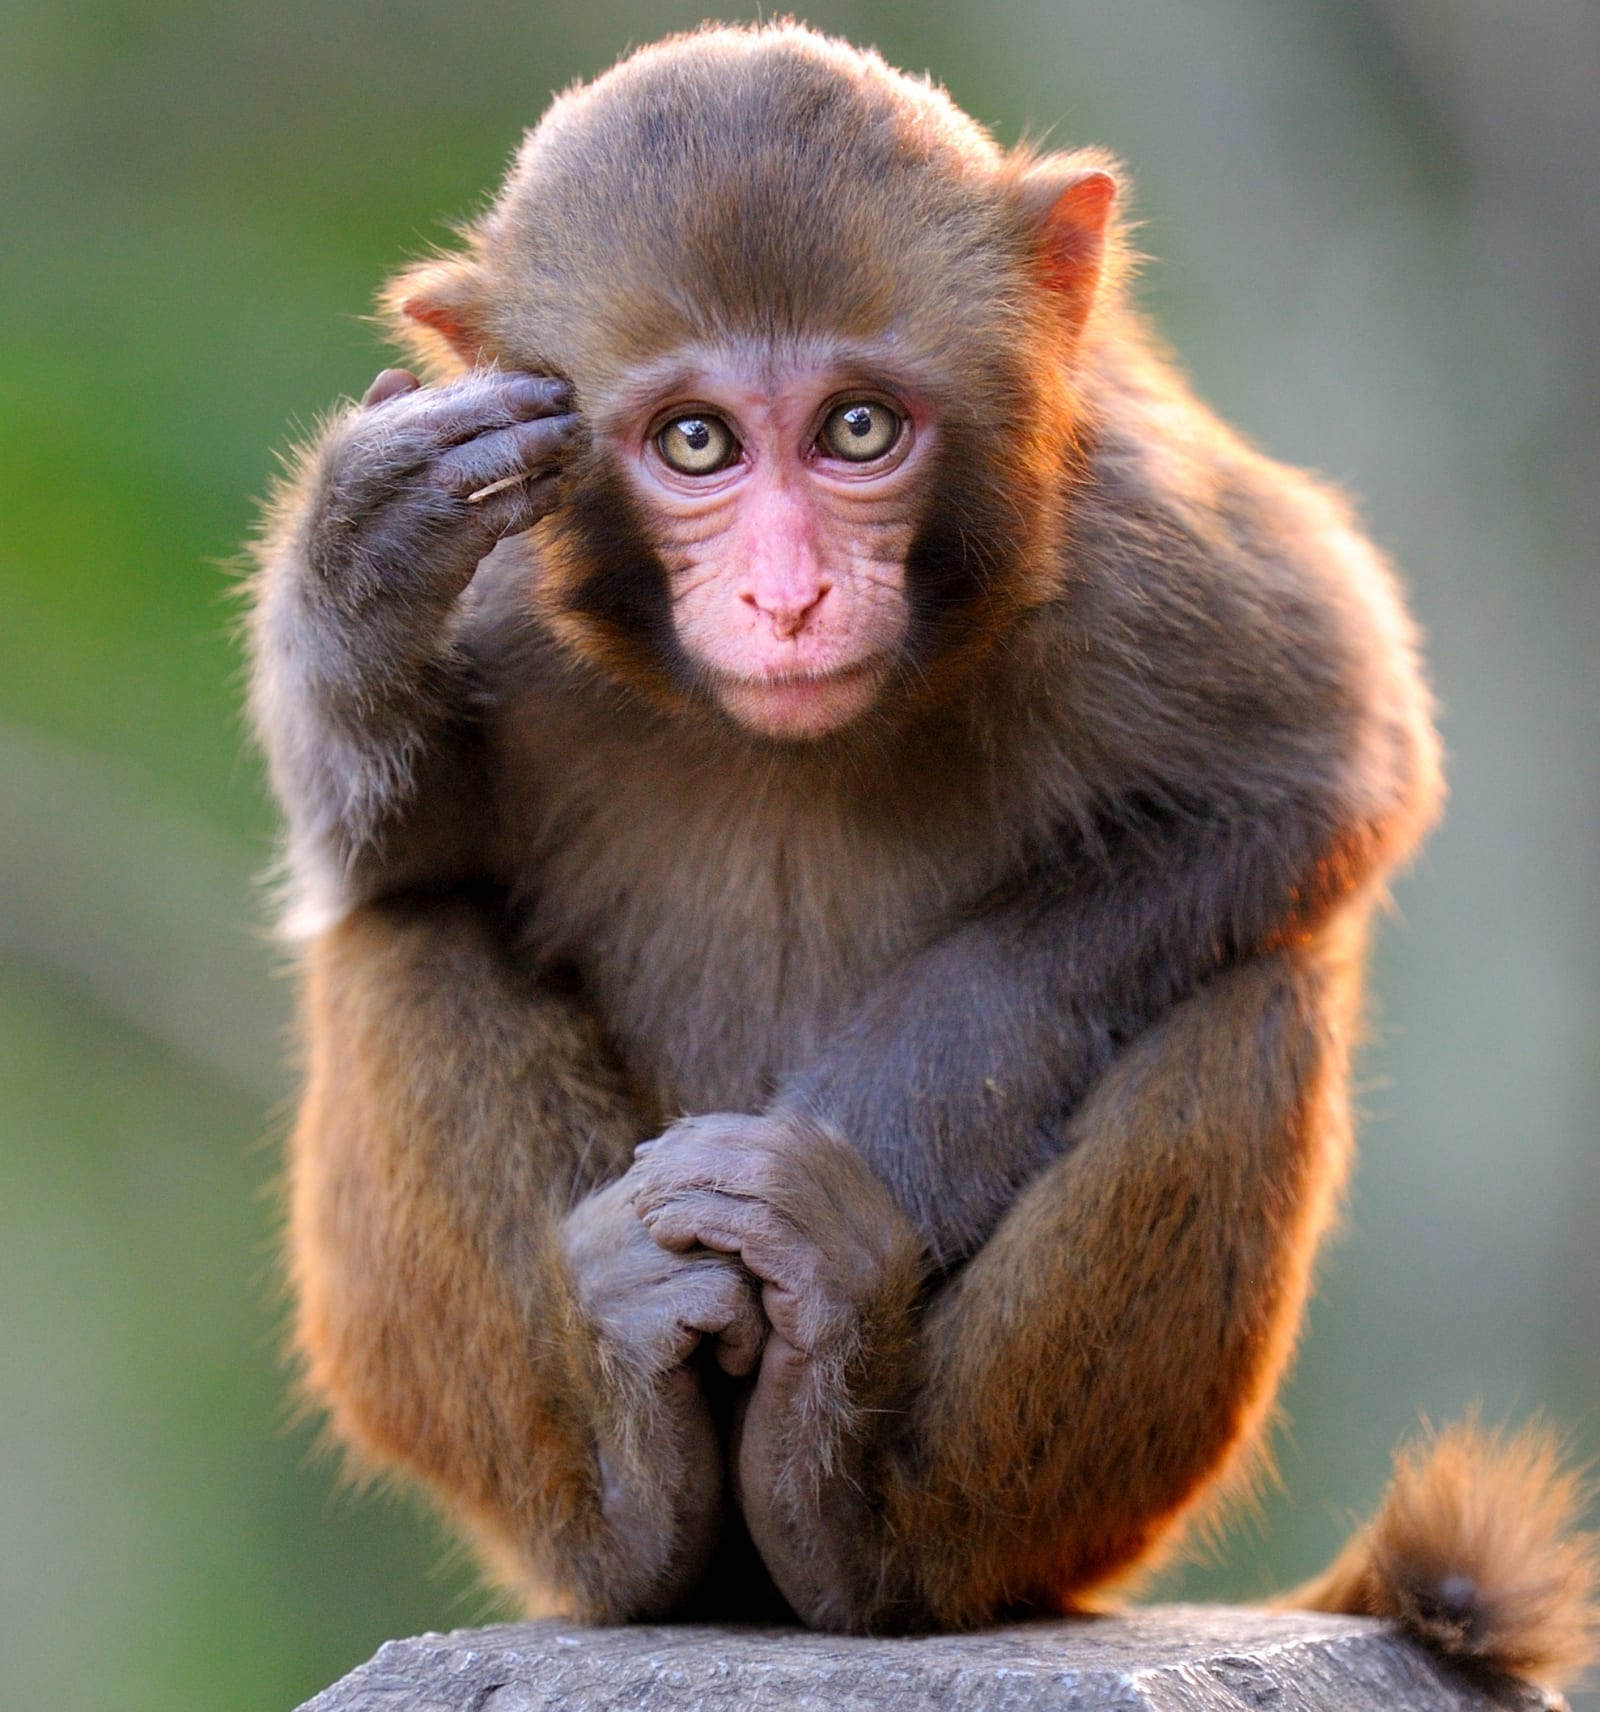 Thinking young monkey